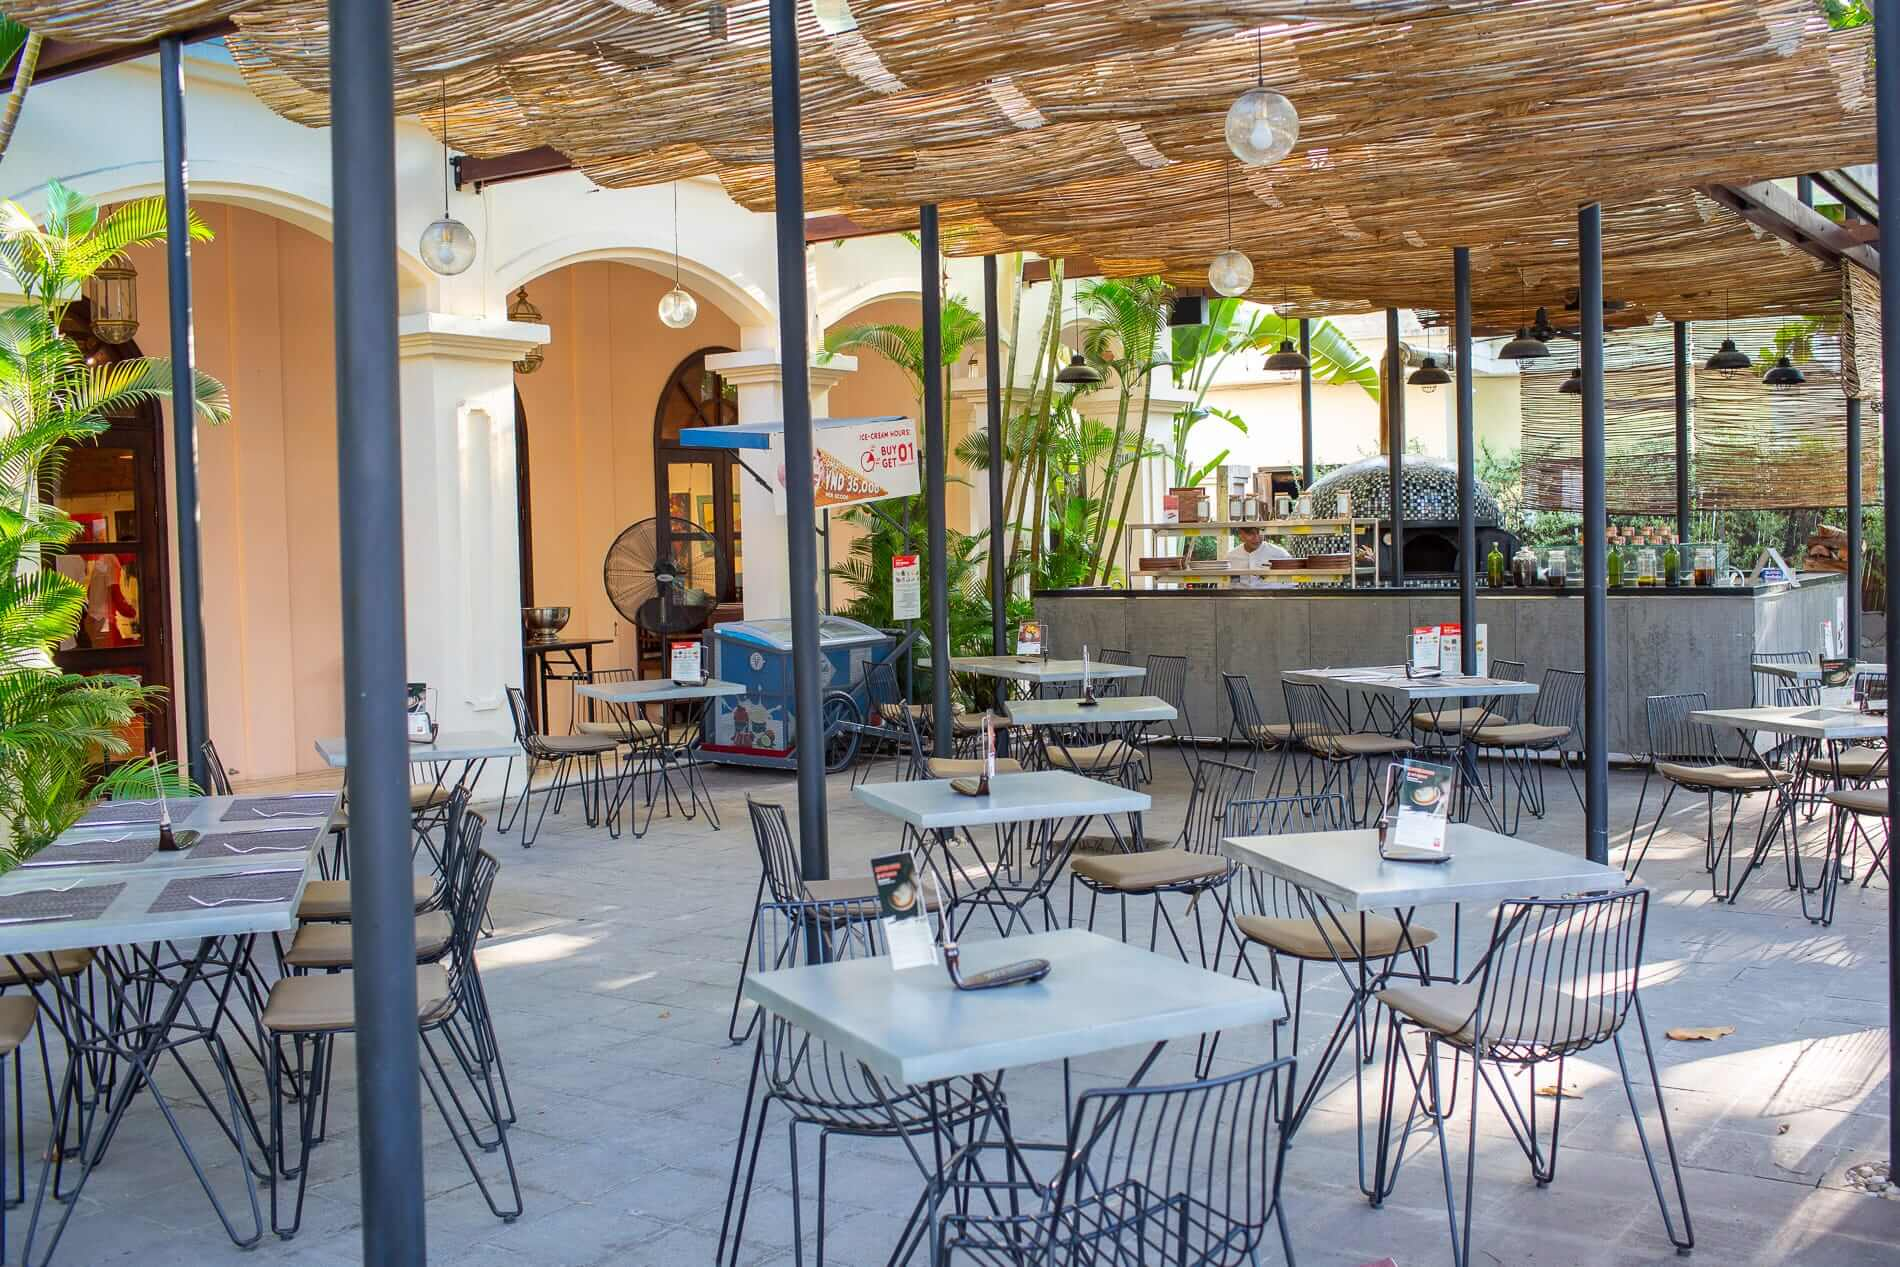 outdoor dining area and pizza oven at Art Space in Hoi An